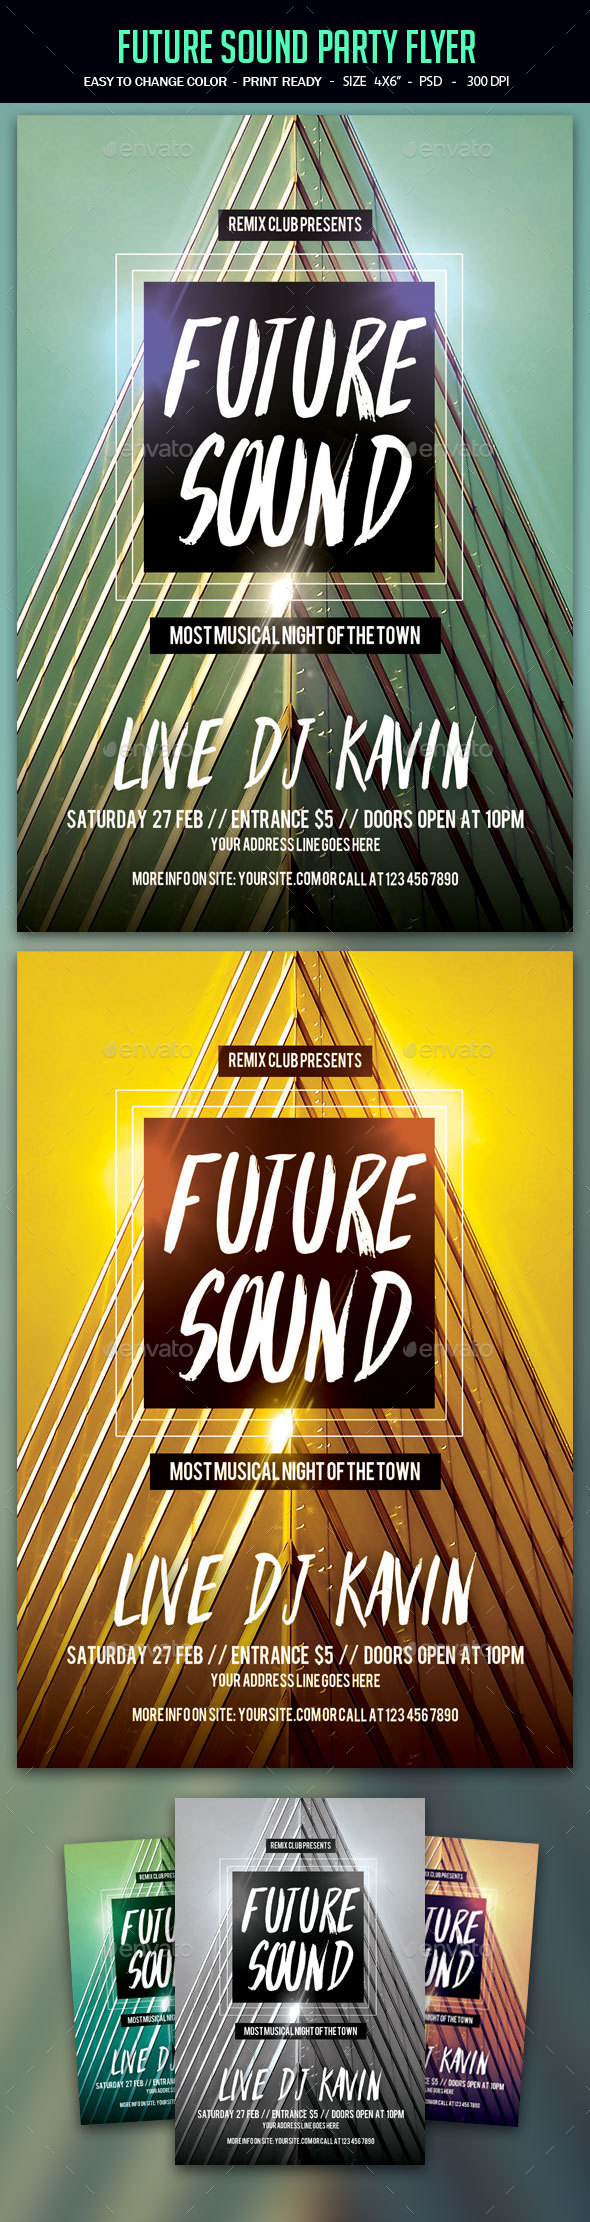 Future Sound Party Flyer - Clubs & Parties Events